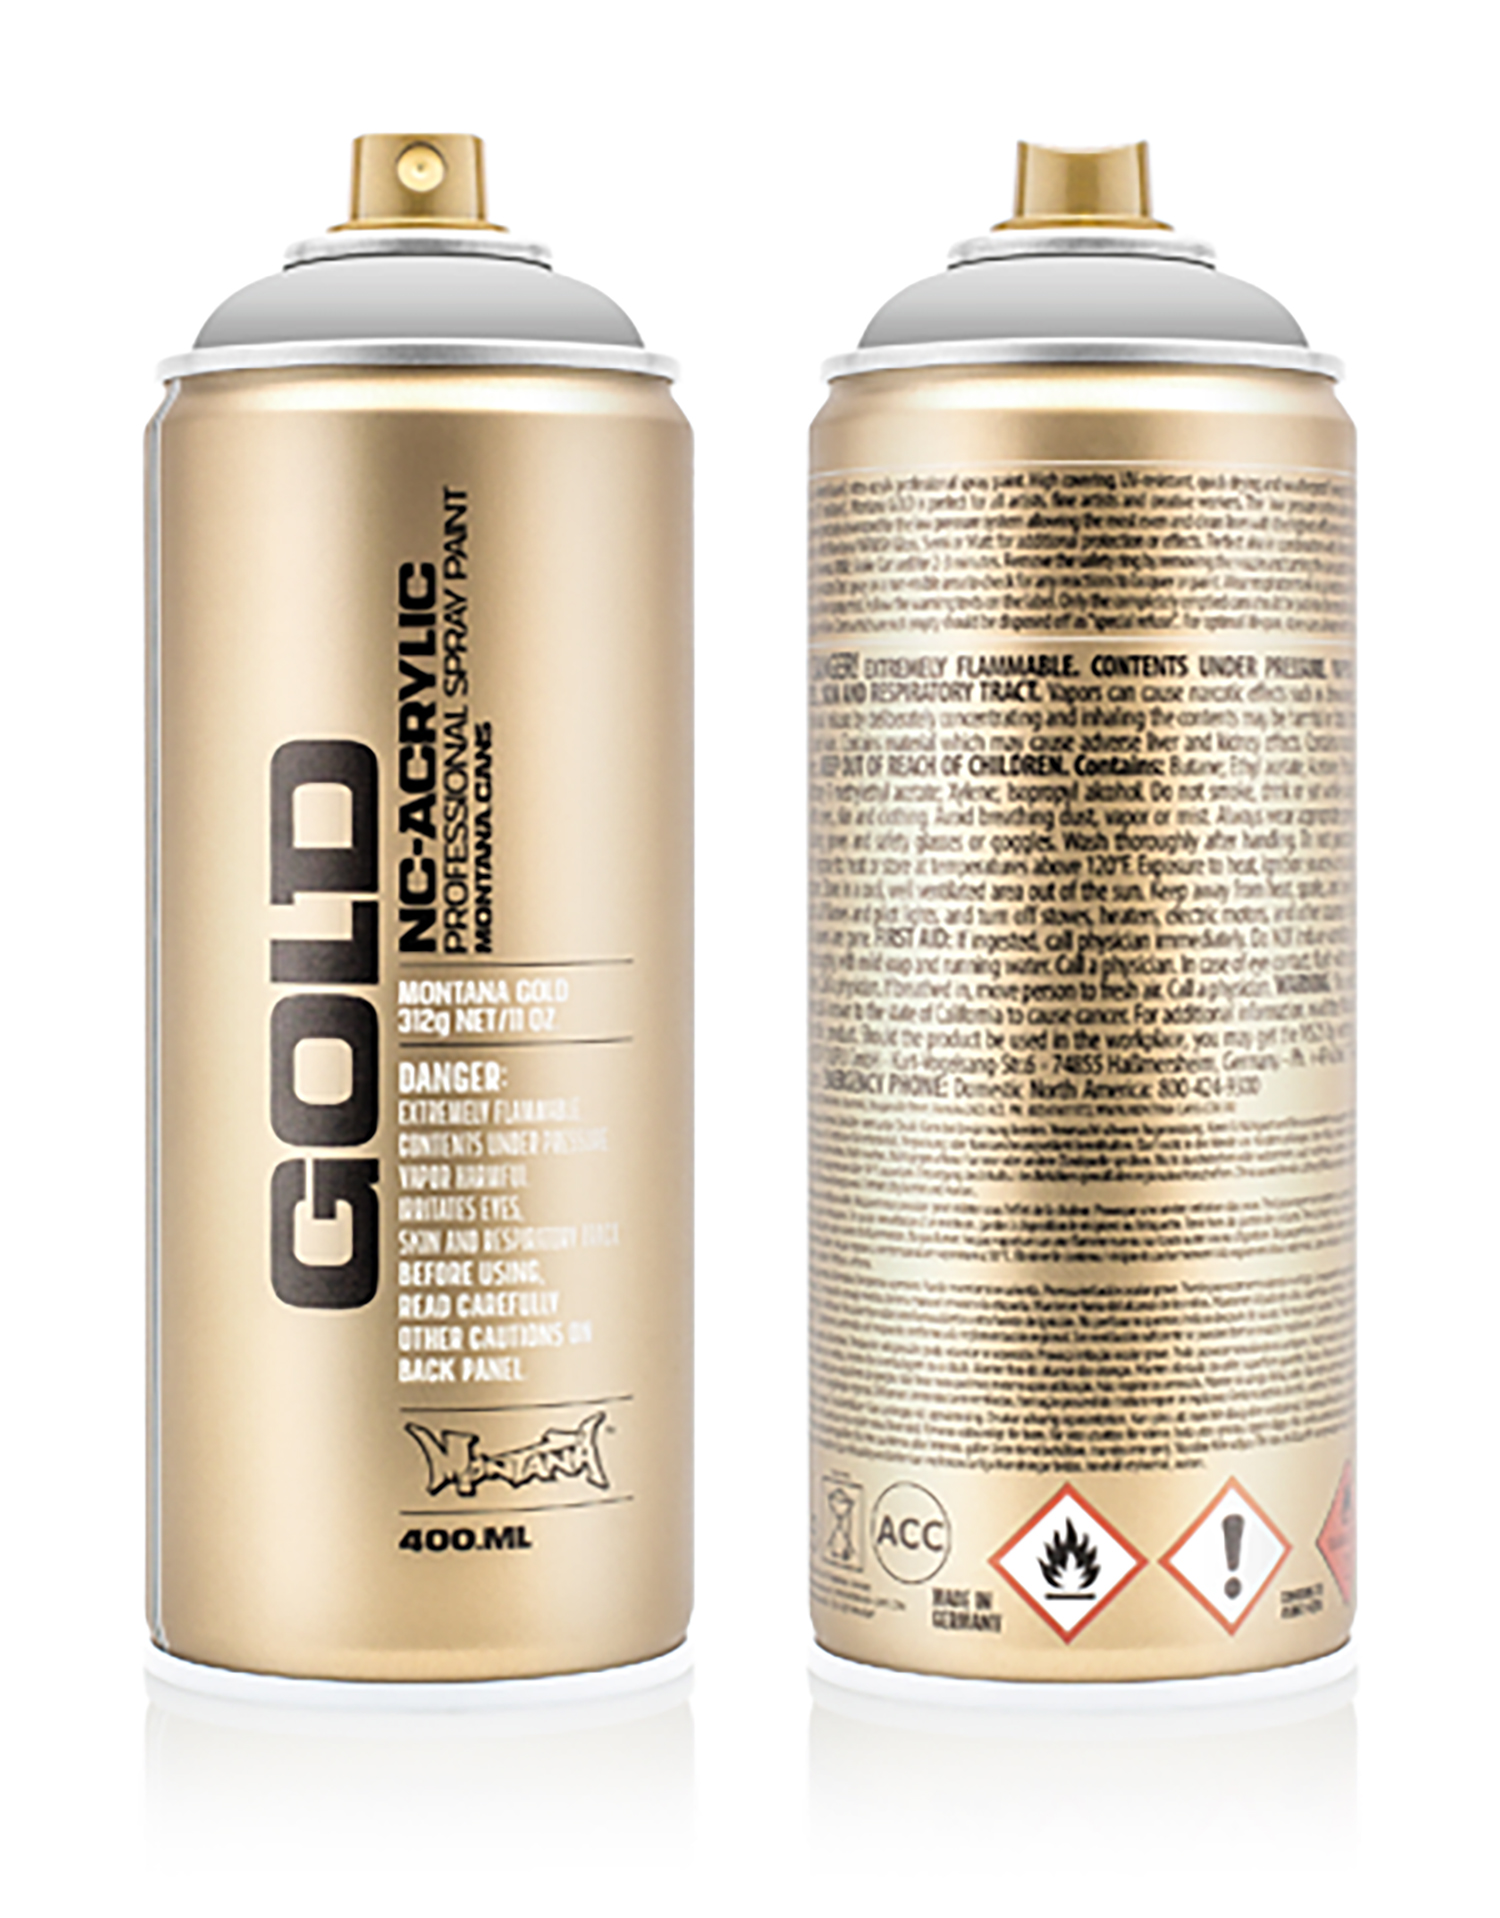 MONTANA-GOLD-SPRAY-400ML-G-7020